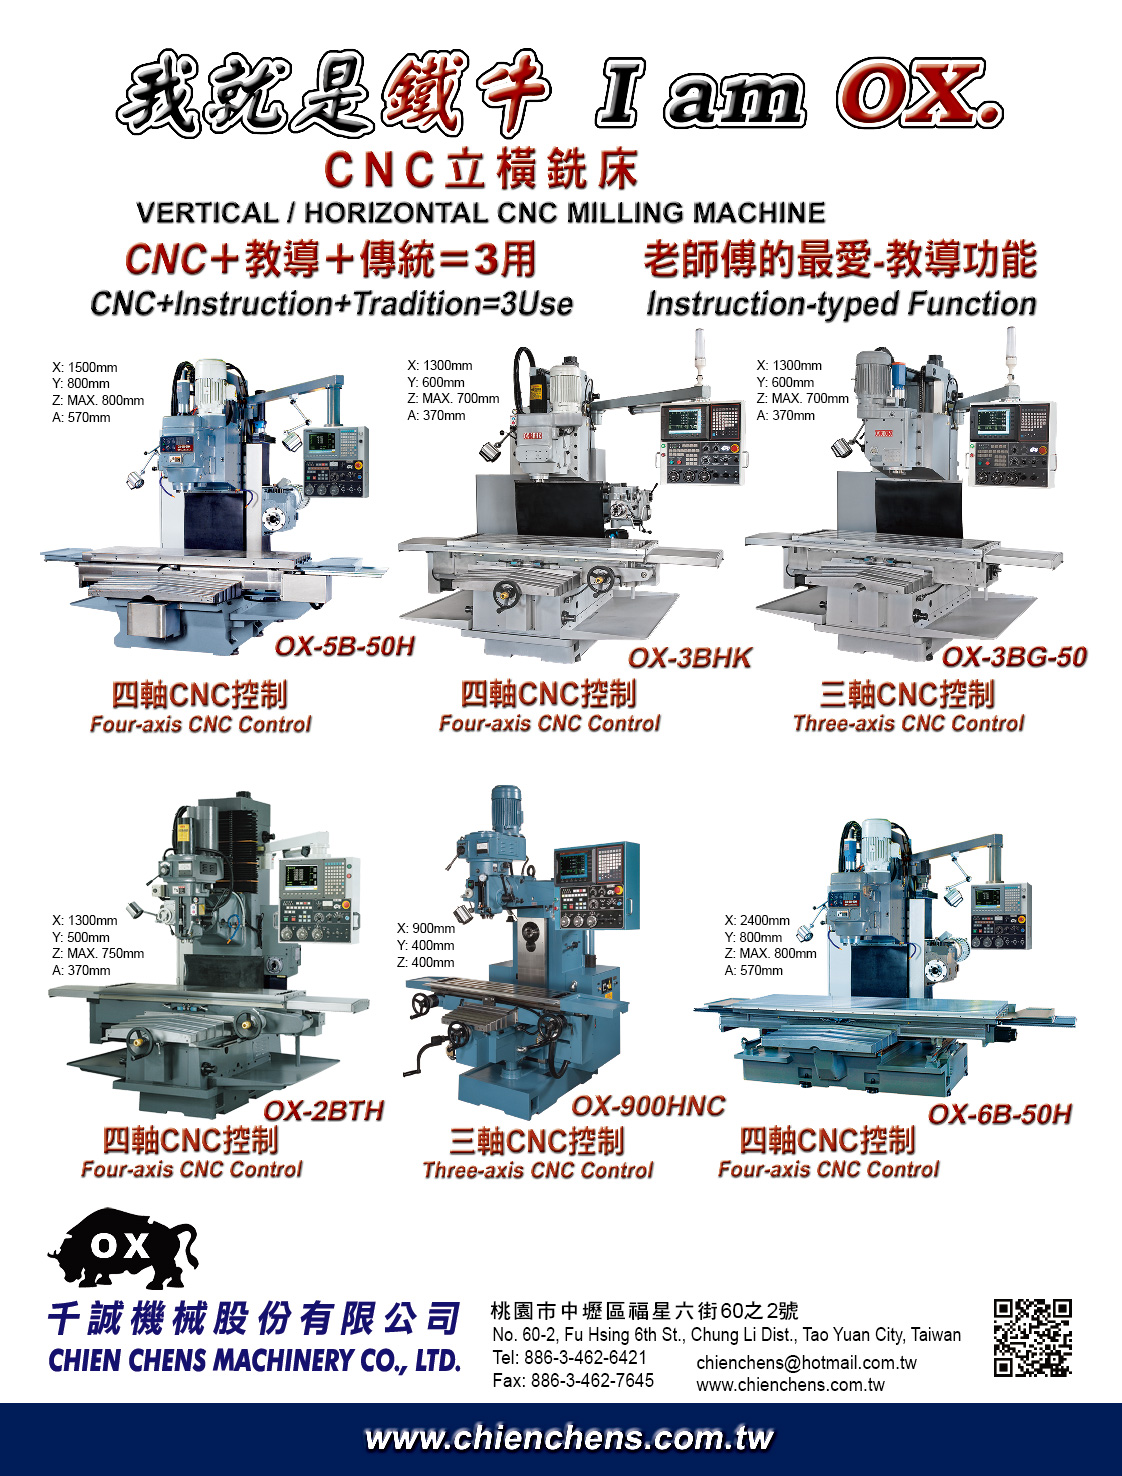 CHIEN CHENS MACHINERY CO., LTD.